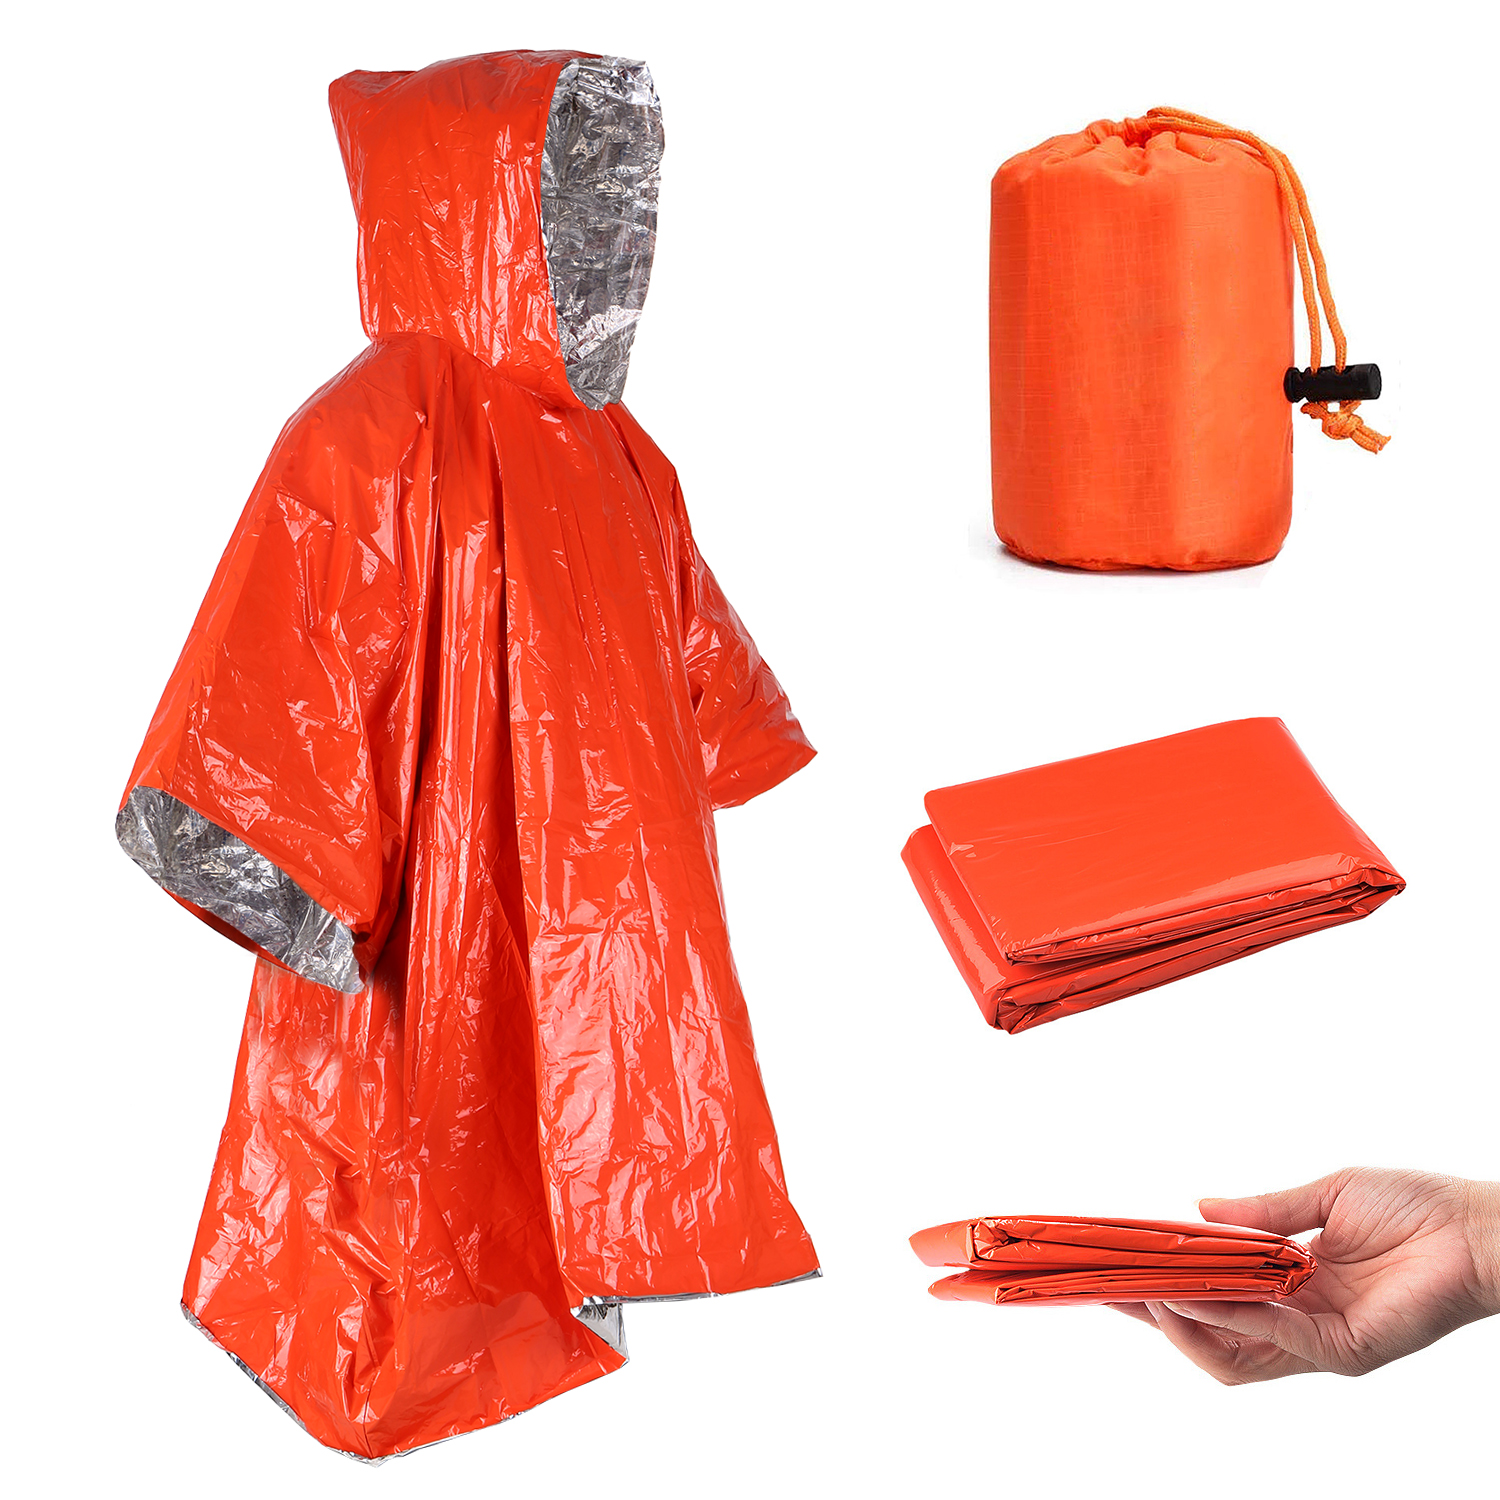 Orange Emergency Raincoat Aluminum Film Disposable Poncho Cold Insulation Rainwear Blankets Survival Tool Camping Equipment|Safety & Survival|   - AliExpress